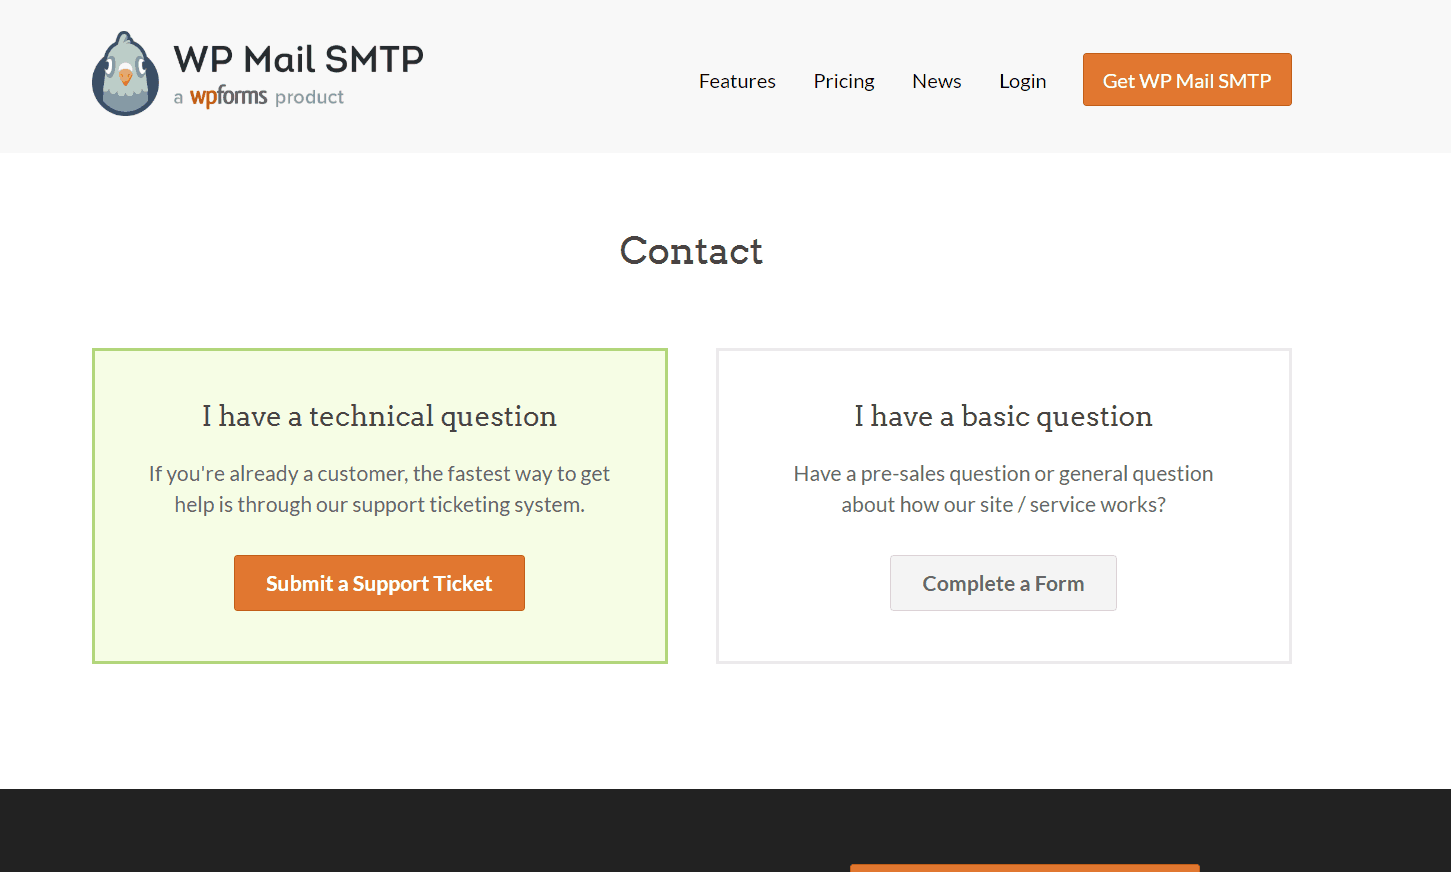 wp mail smtp support page